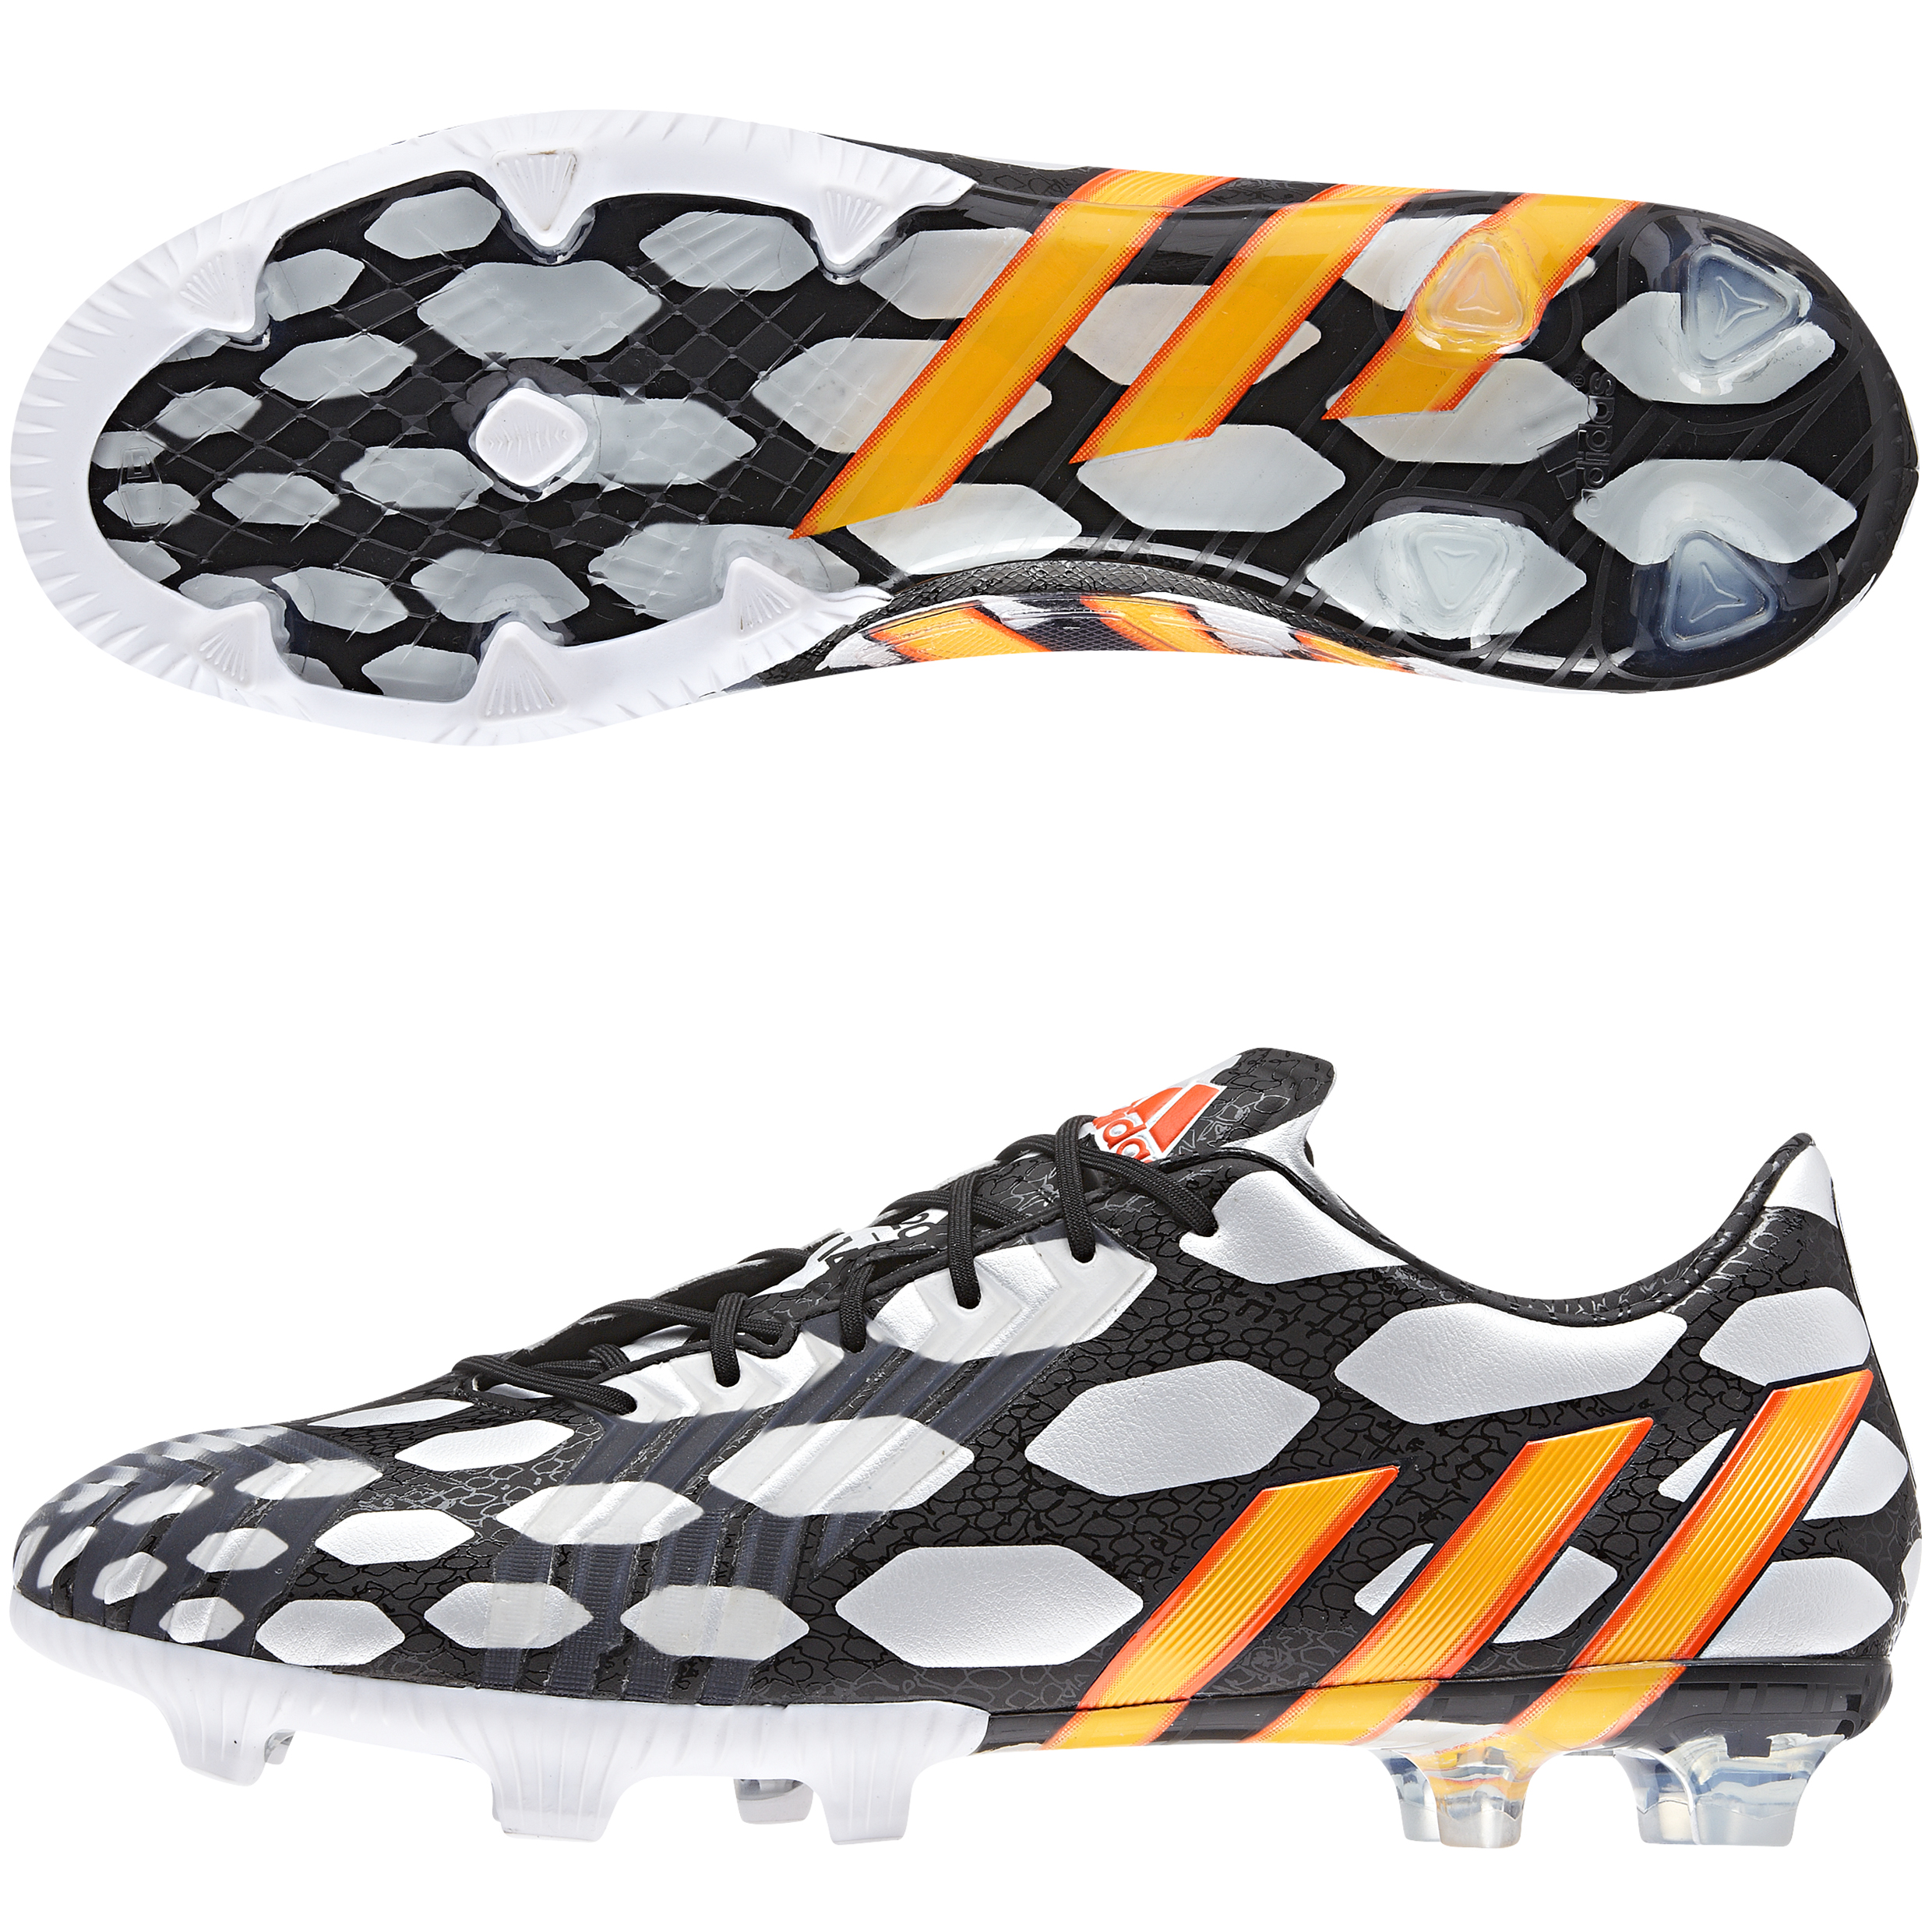 Adidas Predator LZ World Cup 2014 Firm Ground Football Boots Black